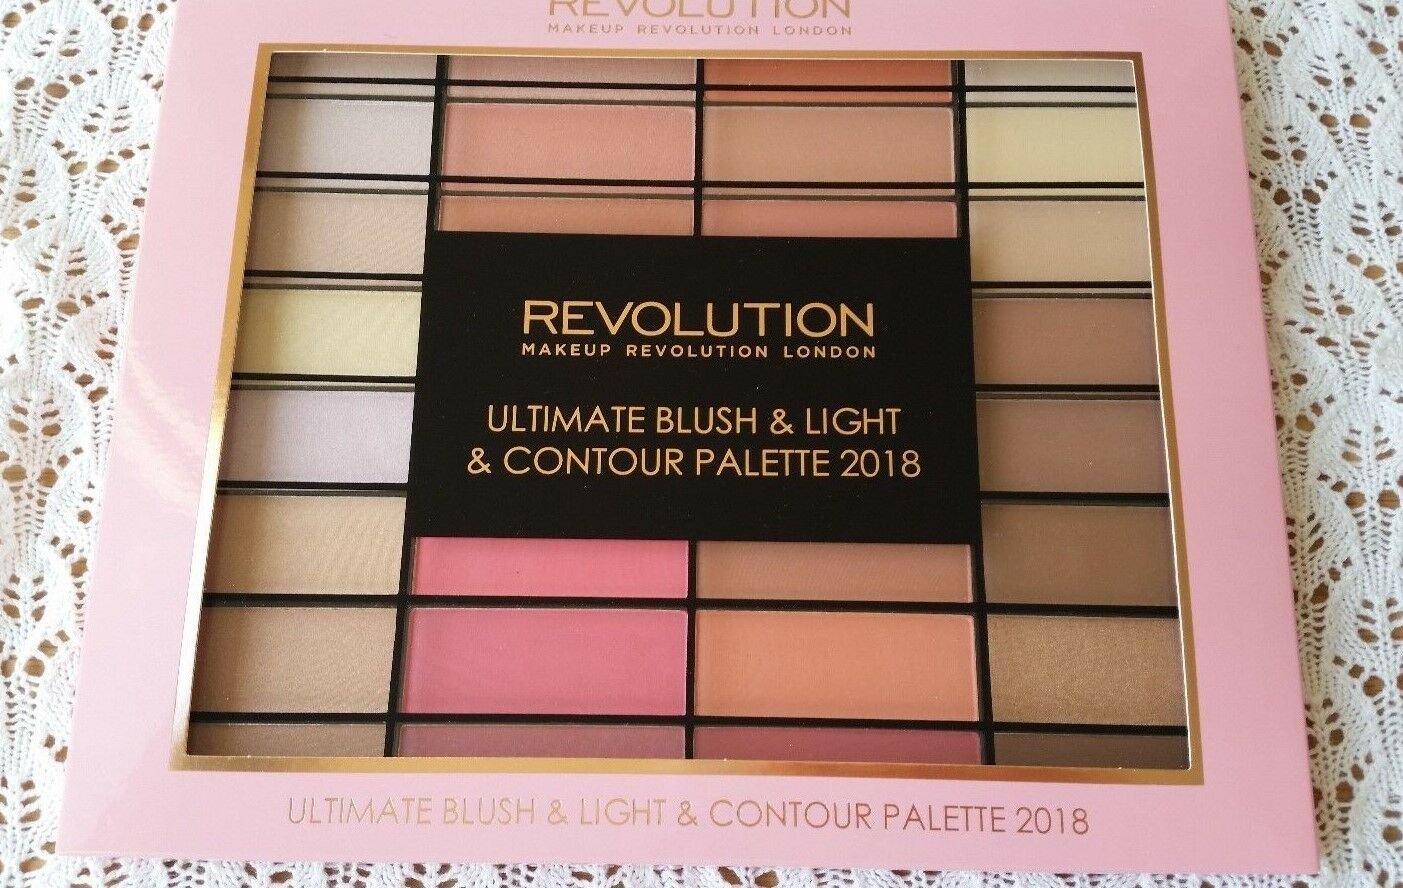 Makeup Revolution Blush Palette 2018 Contour Highlighter Blusher Make Up Powder Shades 1 Of 8free Shipping